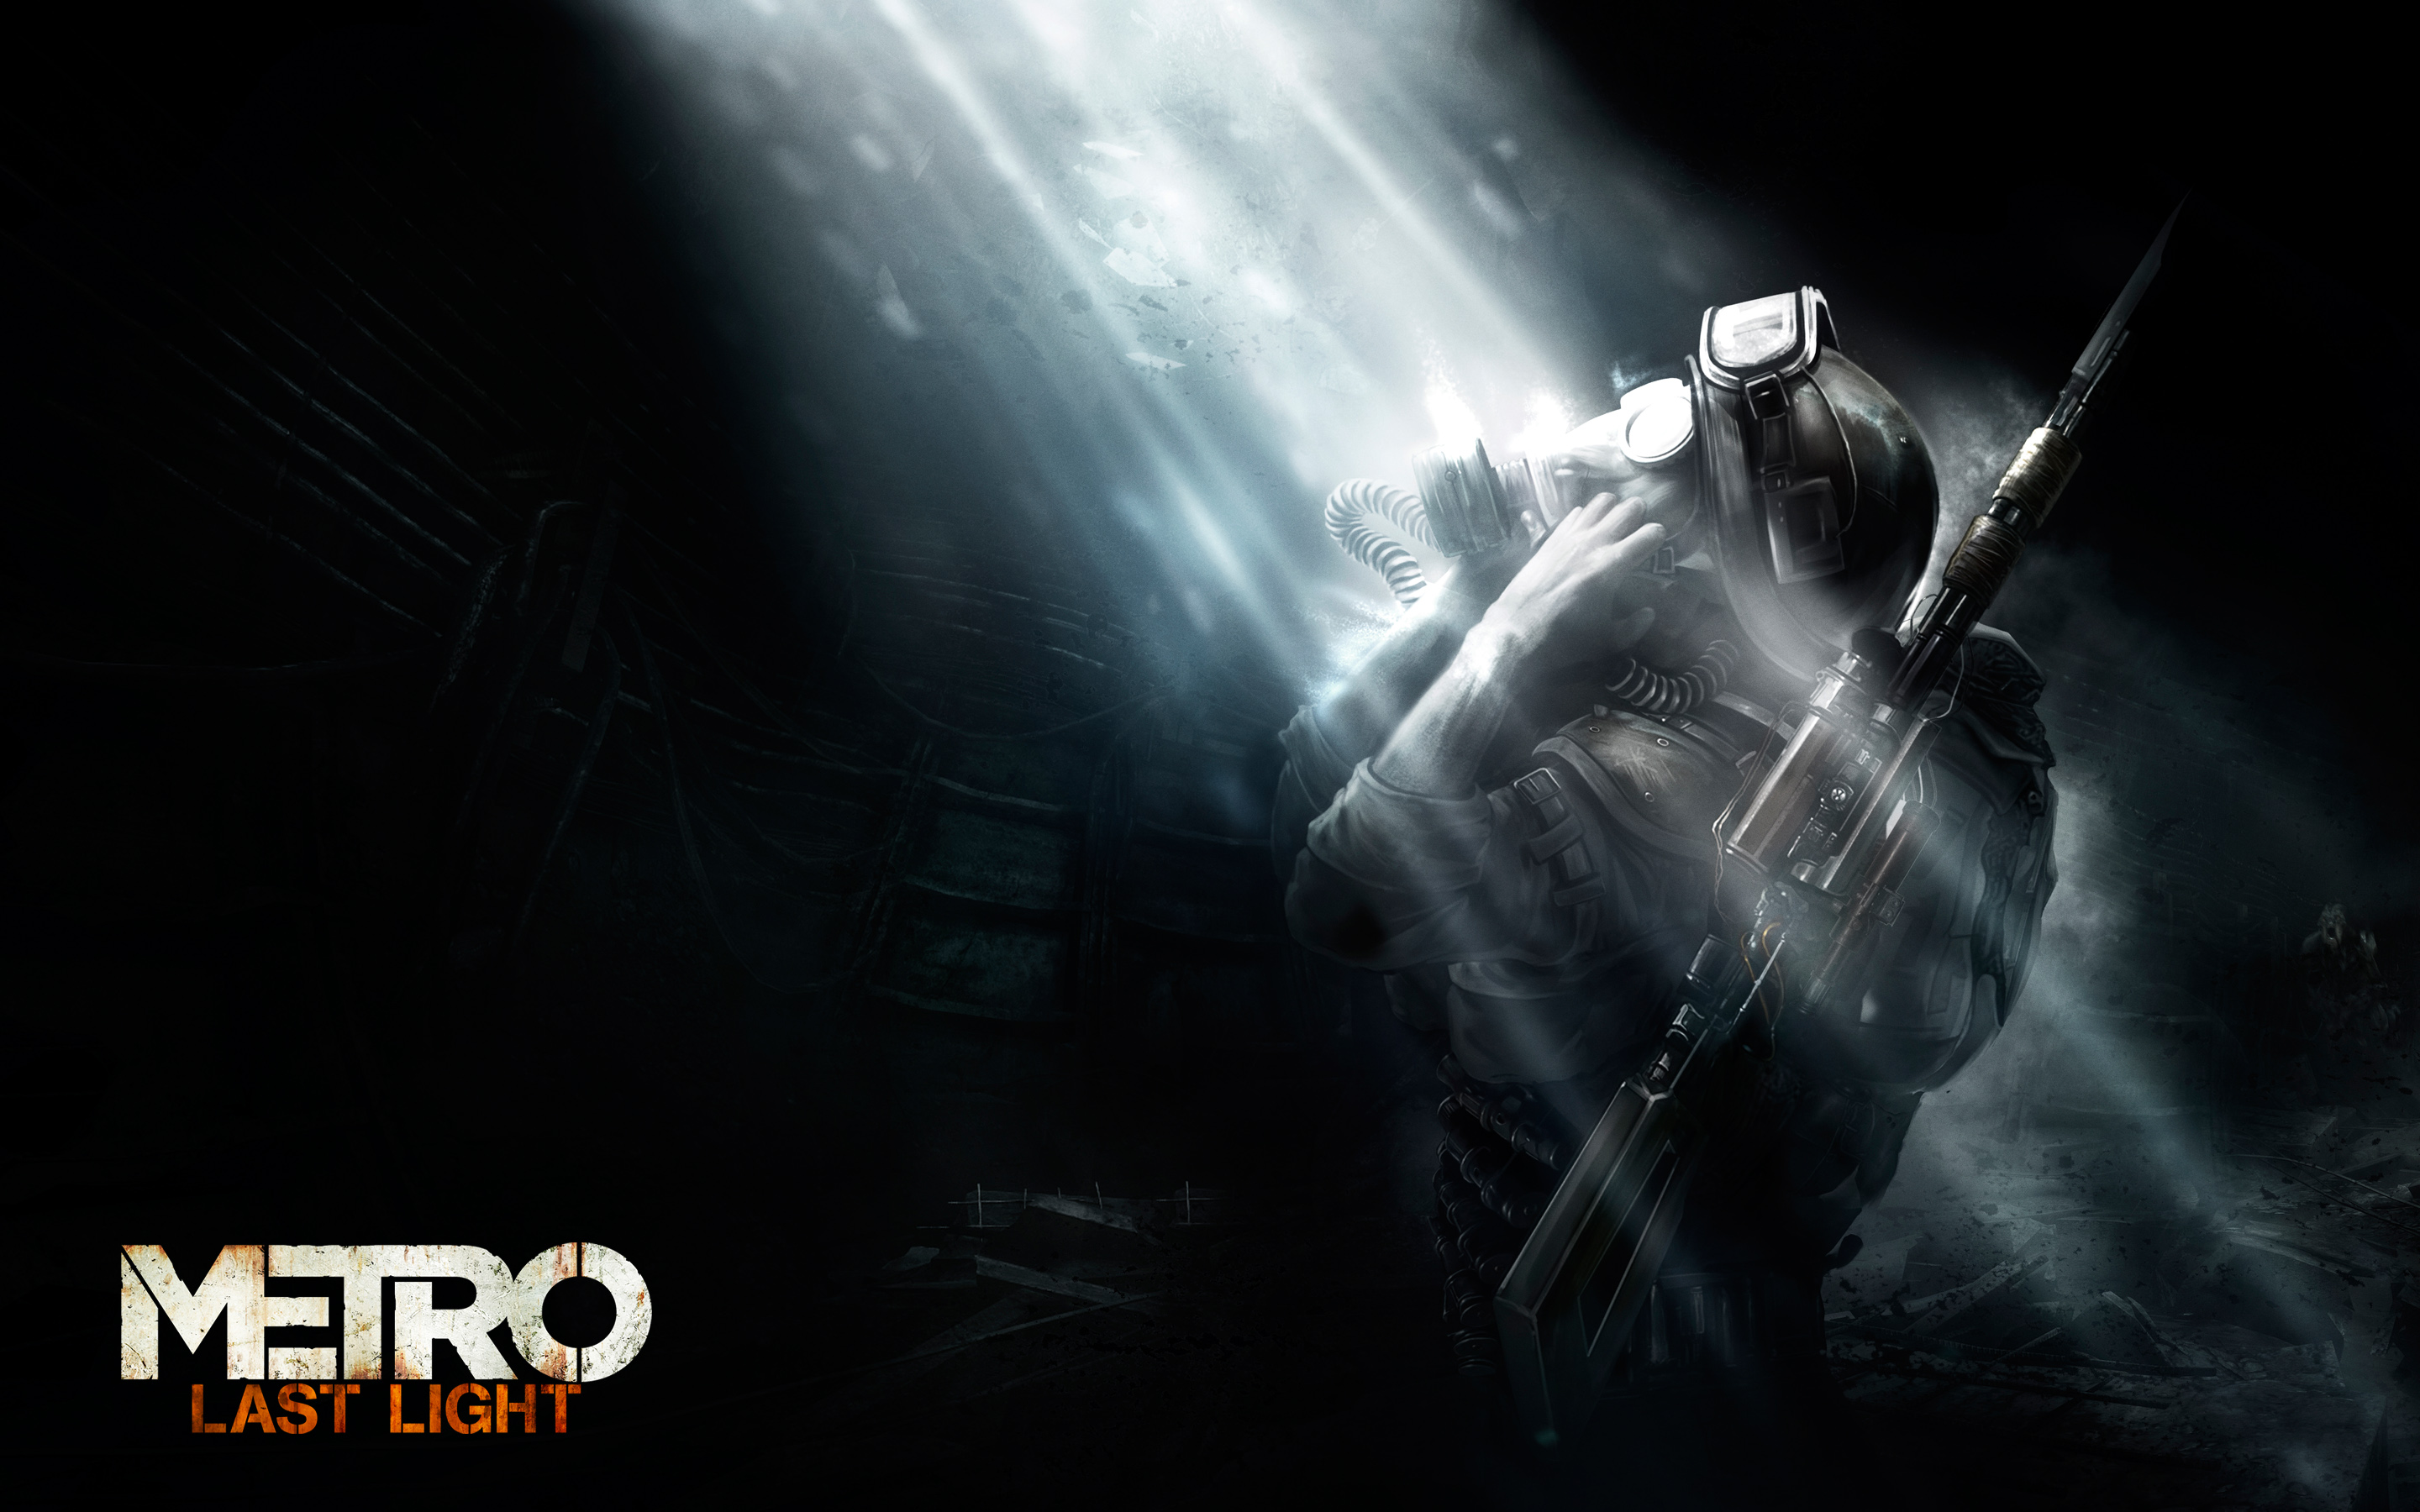 Metro Last Light 2013 Game 1024.52 Kb